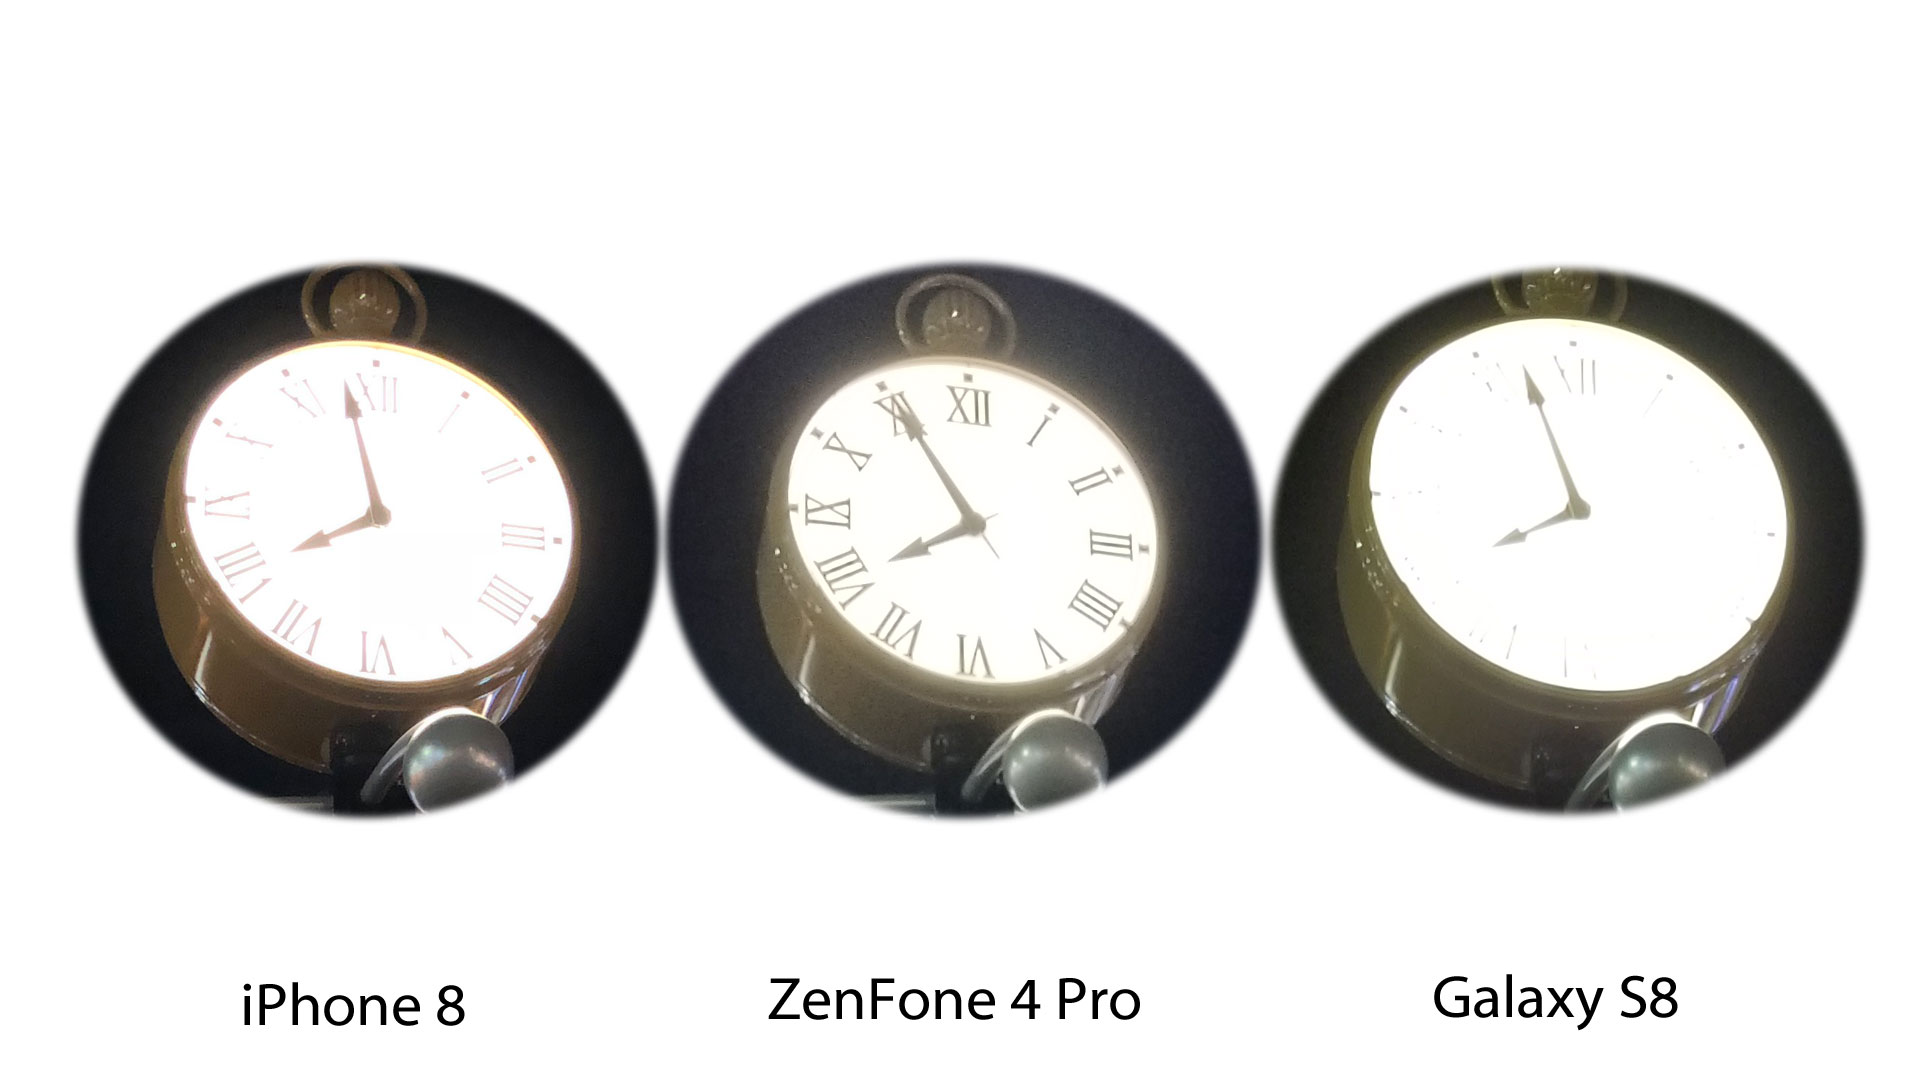 iPhone 8, ZenFone 4 Pro, and Galaxy S8 camera comparison